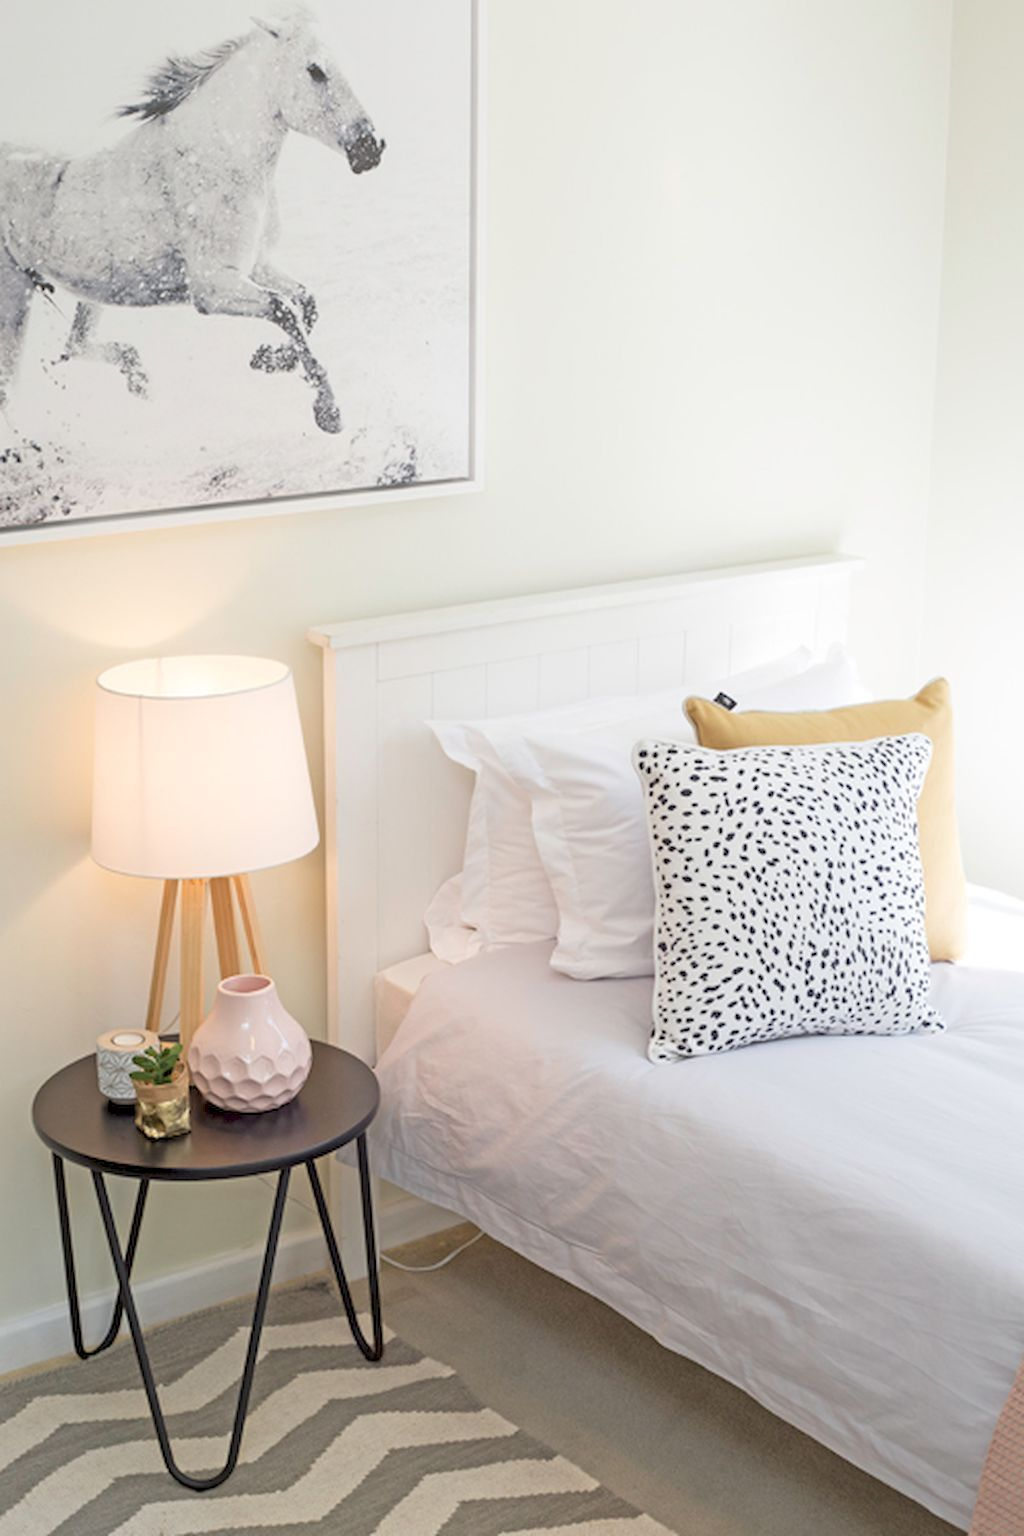 Cozy small bedroom remodel ideas on a